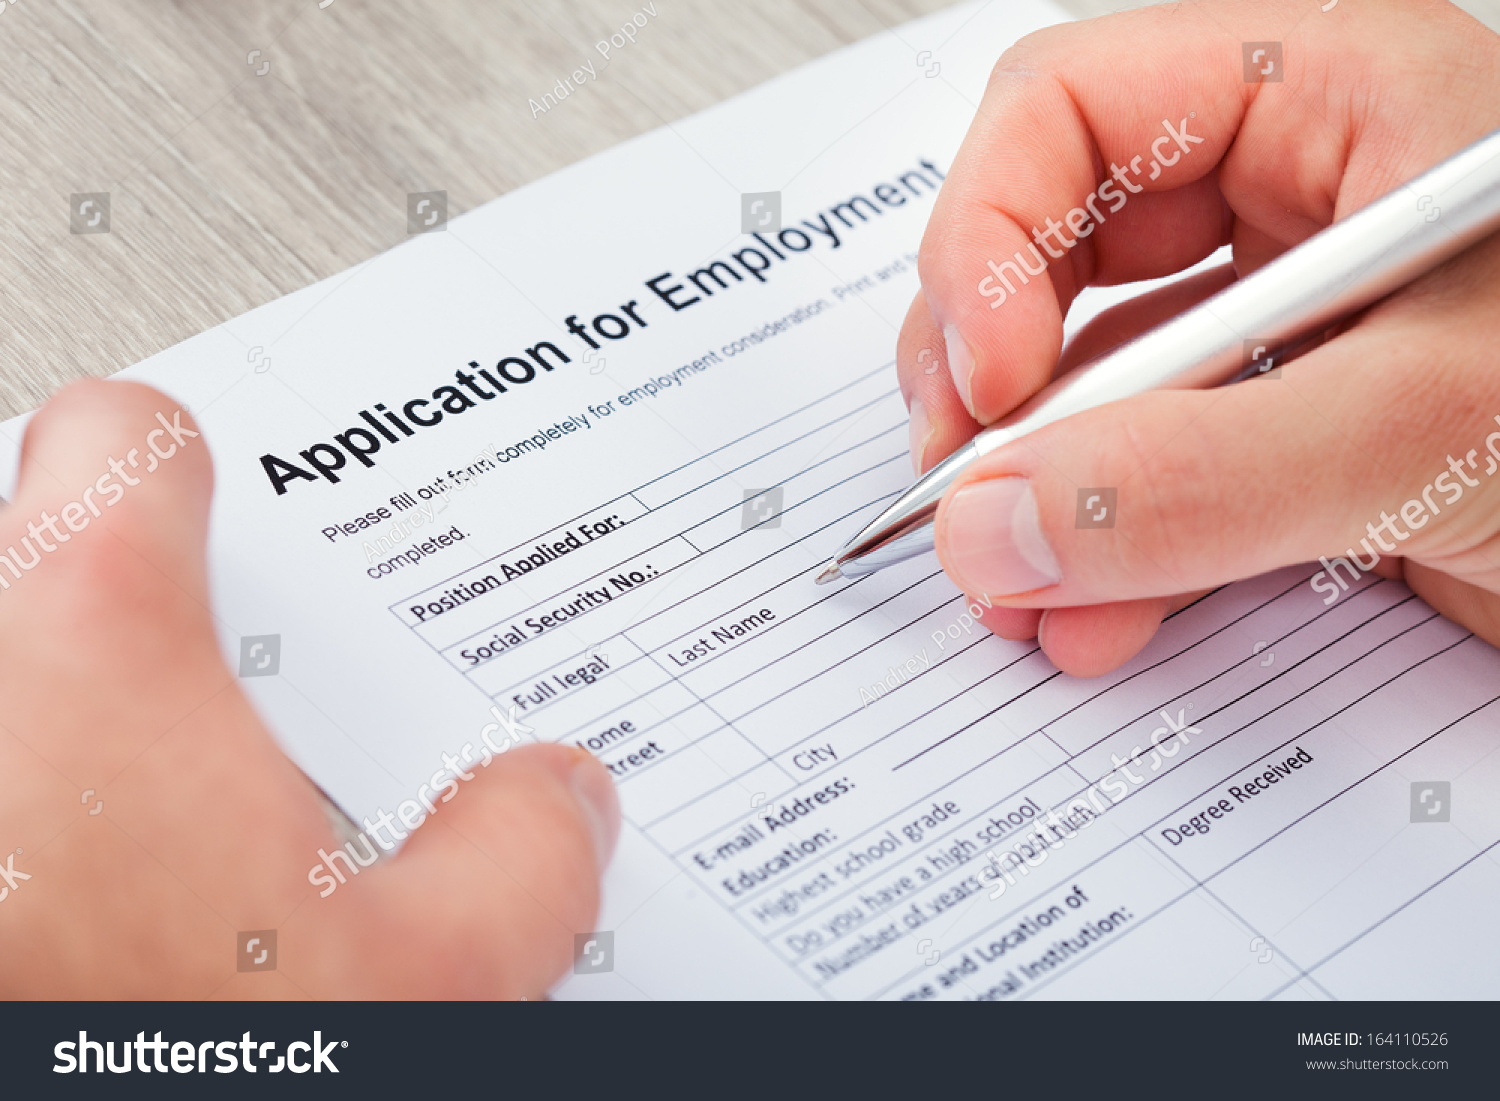 close up of hand filling application for employment stock photo close up of hand filling application for employment